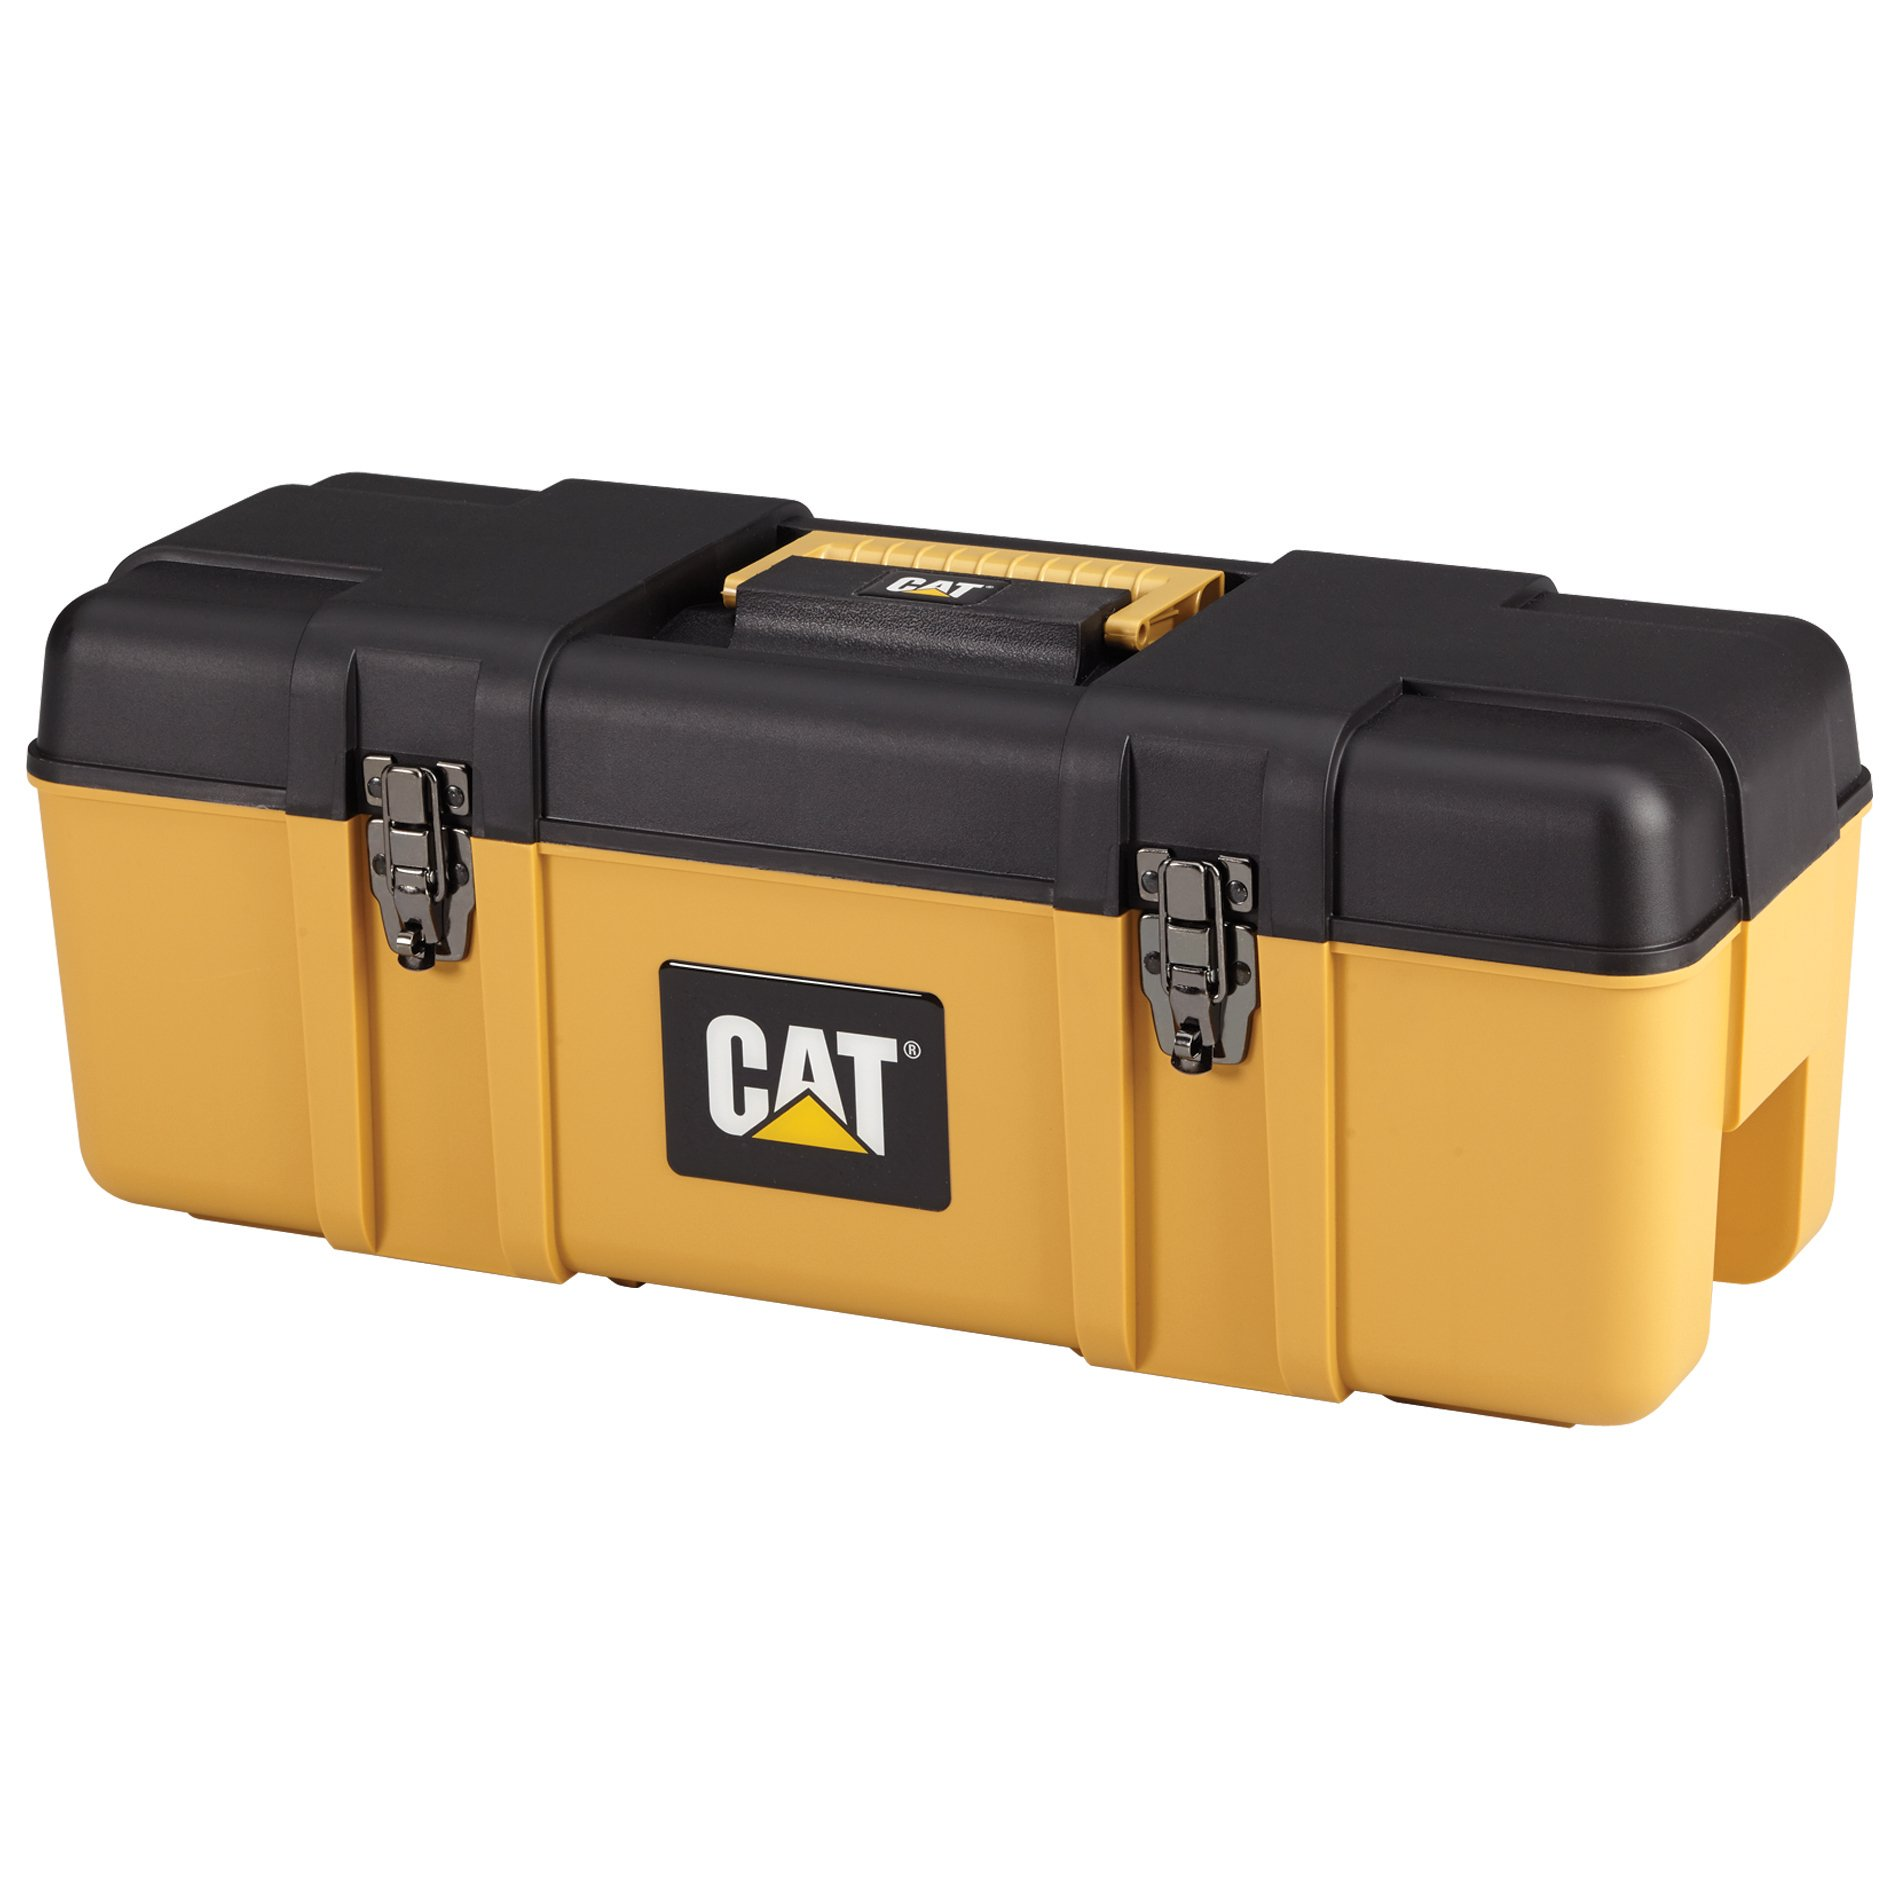 Cat Heavy-Duty Plastic Tool Box with Removable Tote, 26'' W - Designed, Engineered and Assembled in the USA